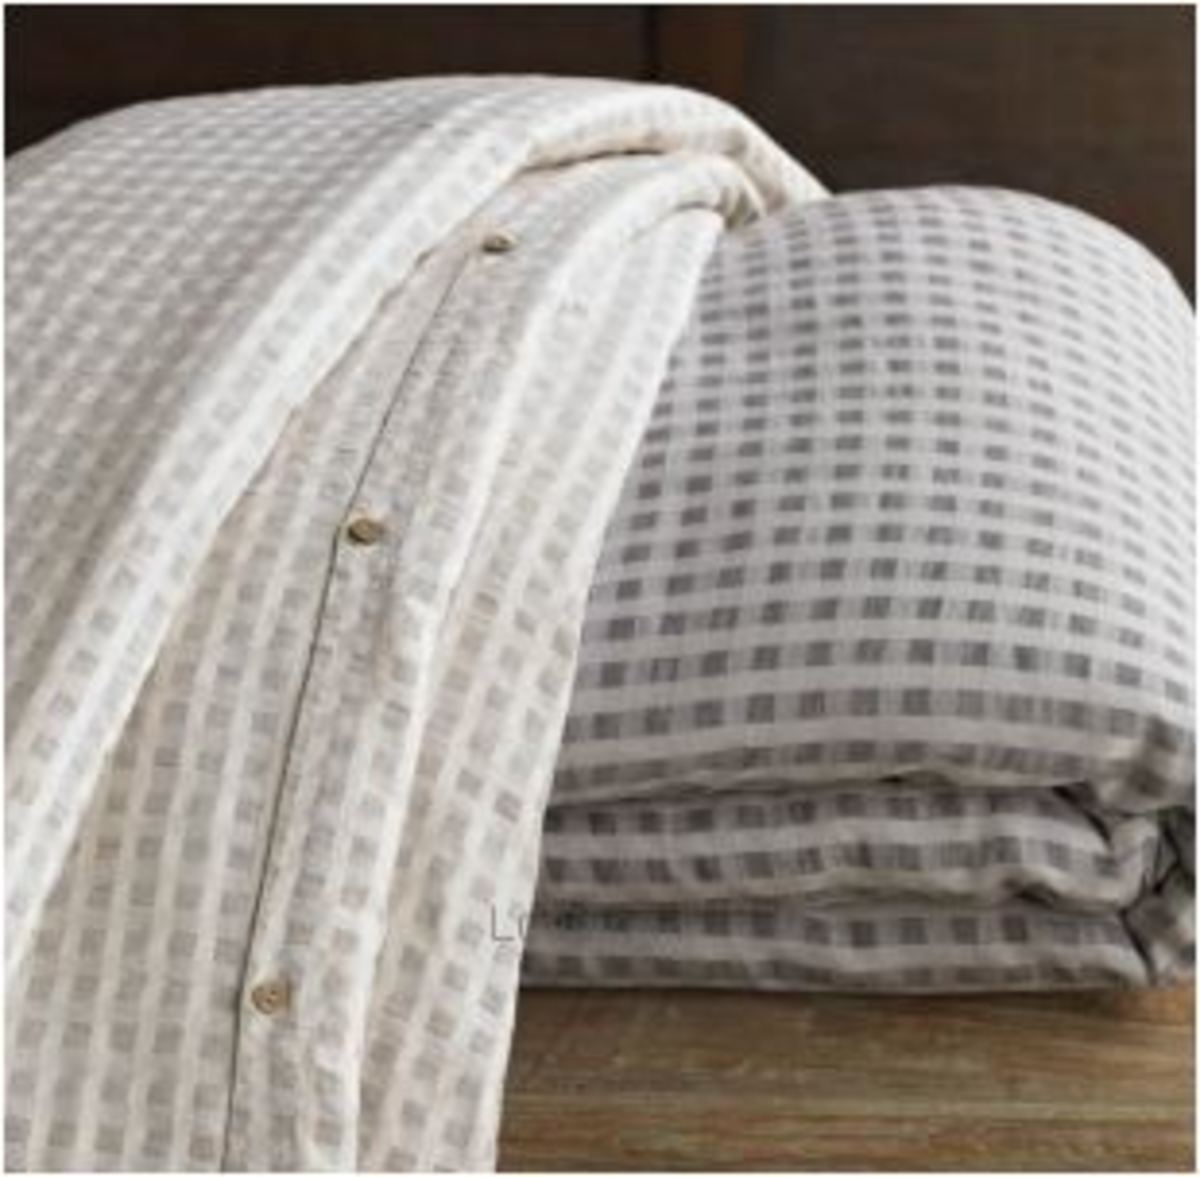 Duvet with buttons